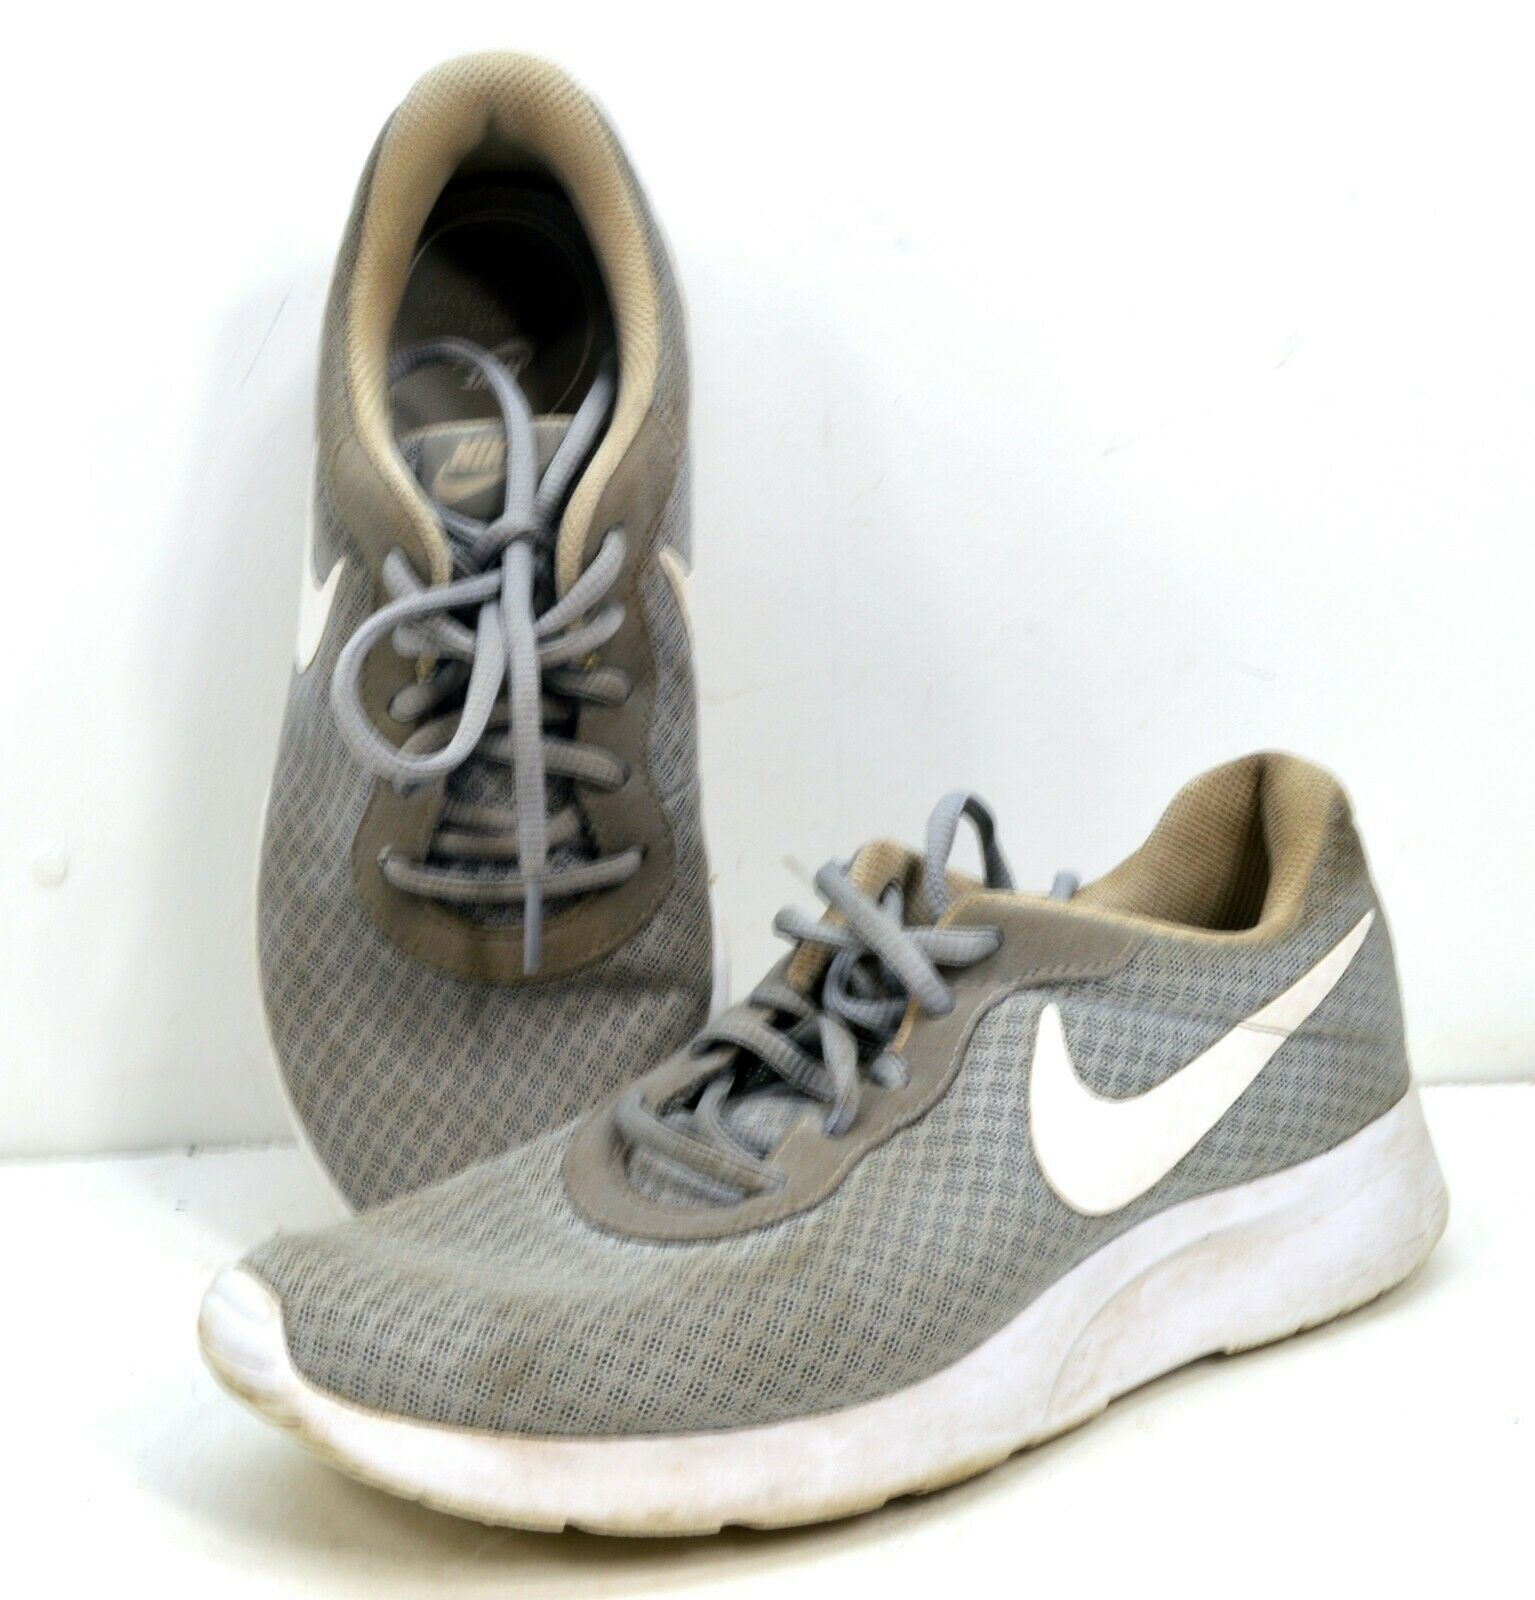 Women's Nike TANJUN Casual Athletic Shoes 812655-010 Wolf Grey/White Size 9